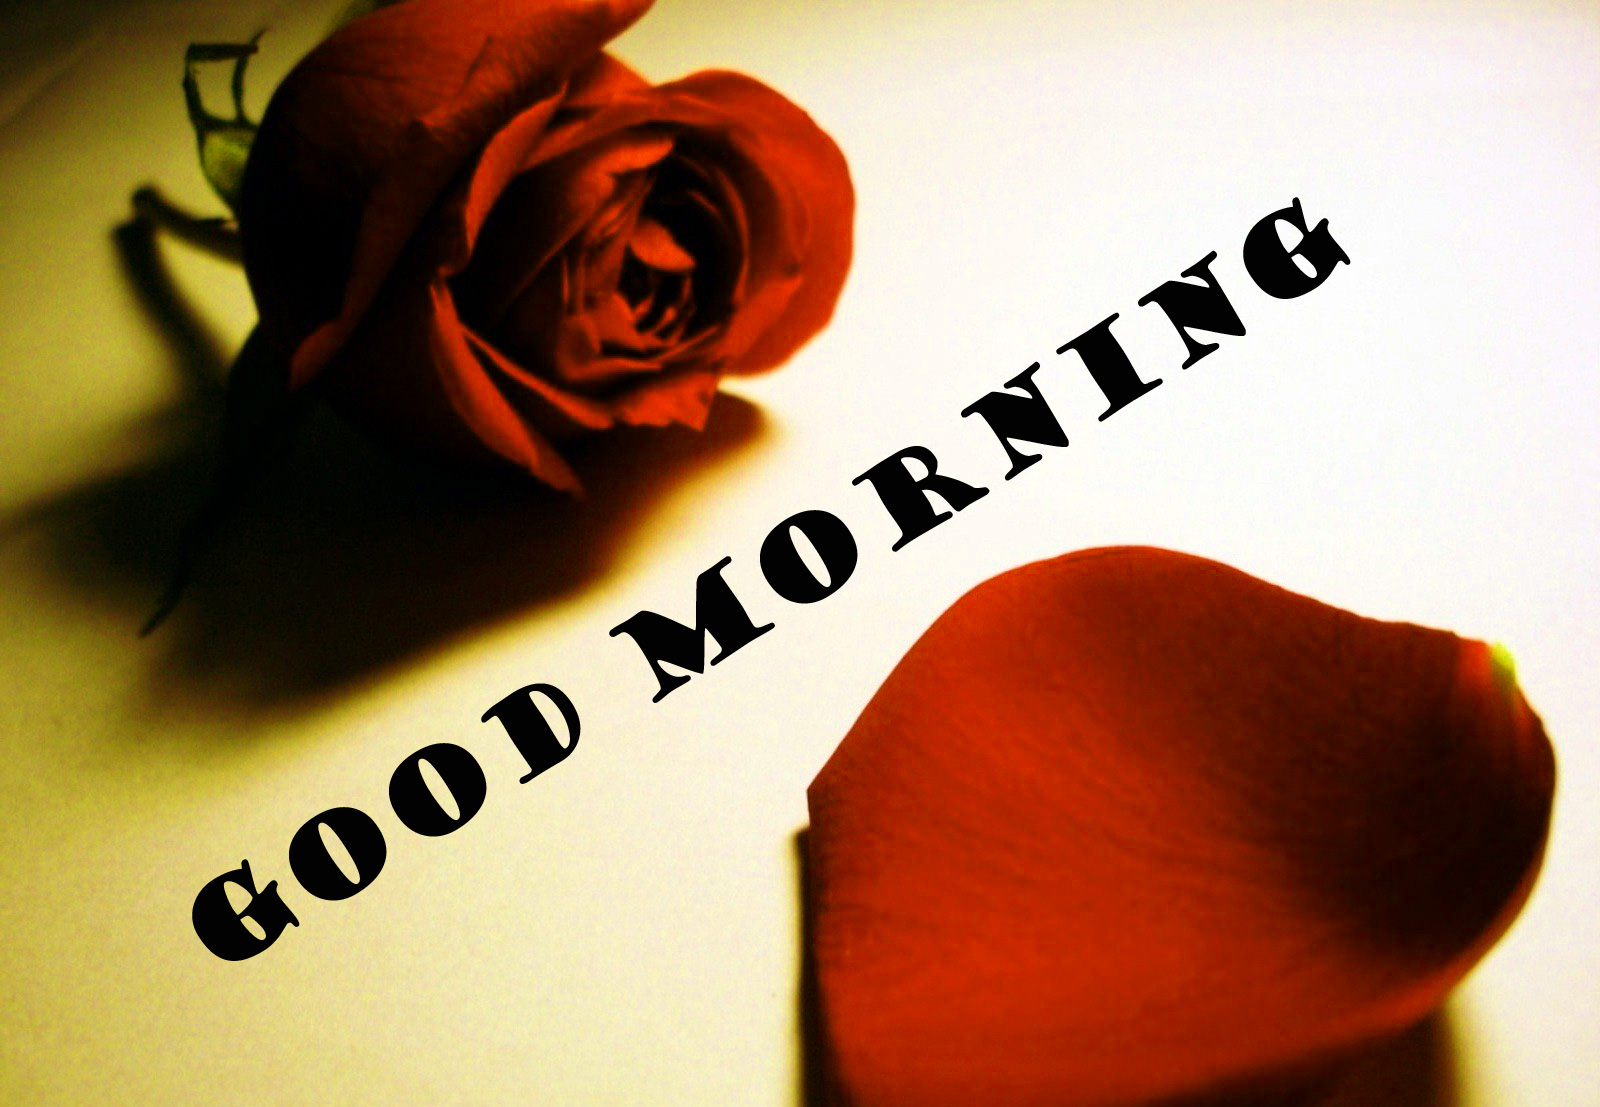 Good Morning Red Rose Wallpaper Photo Images HD Download